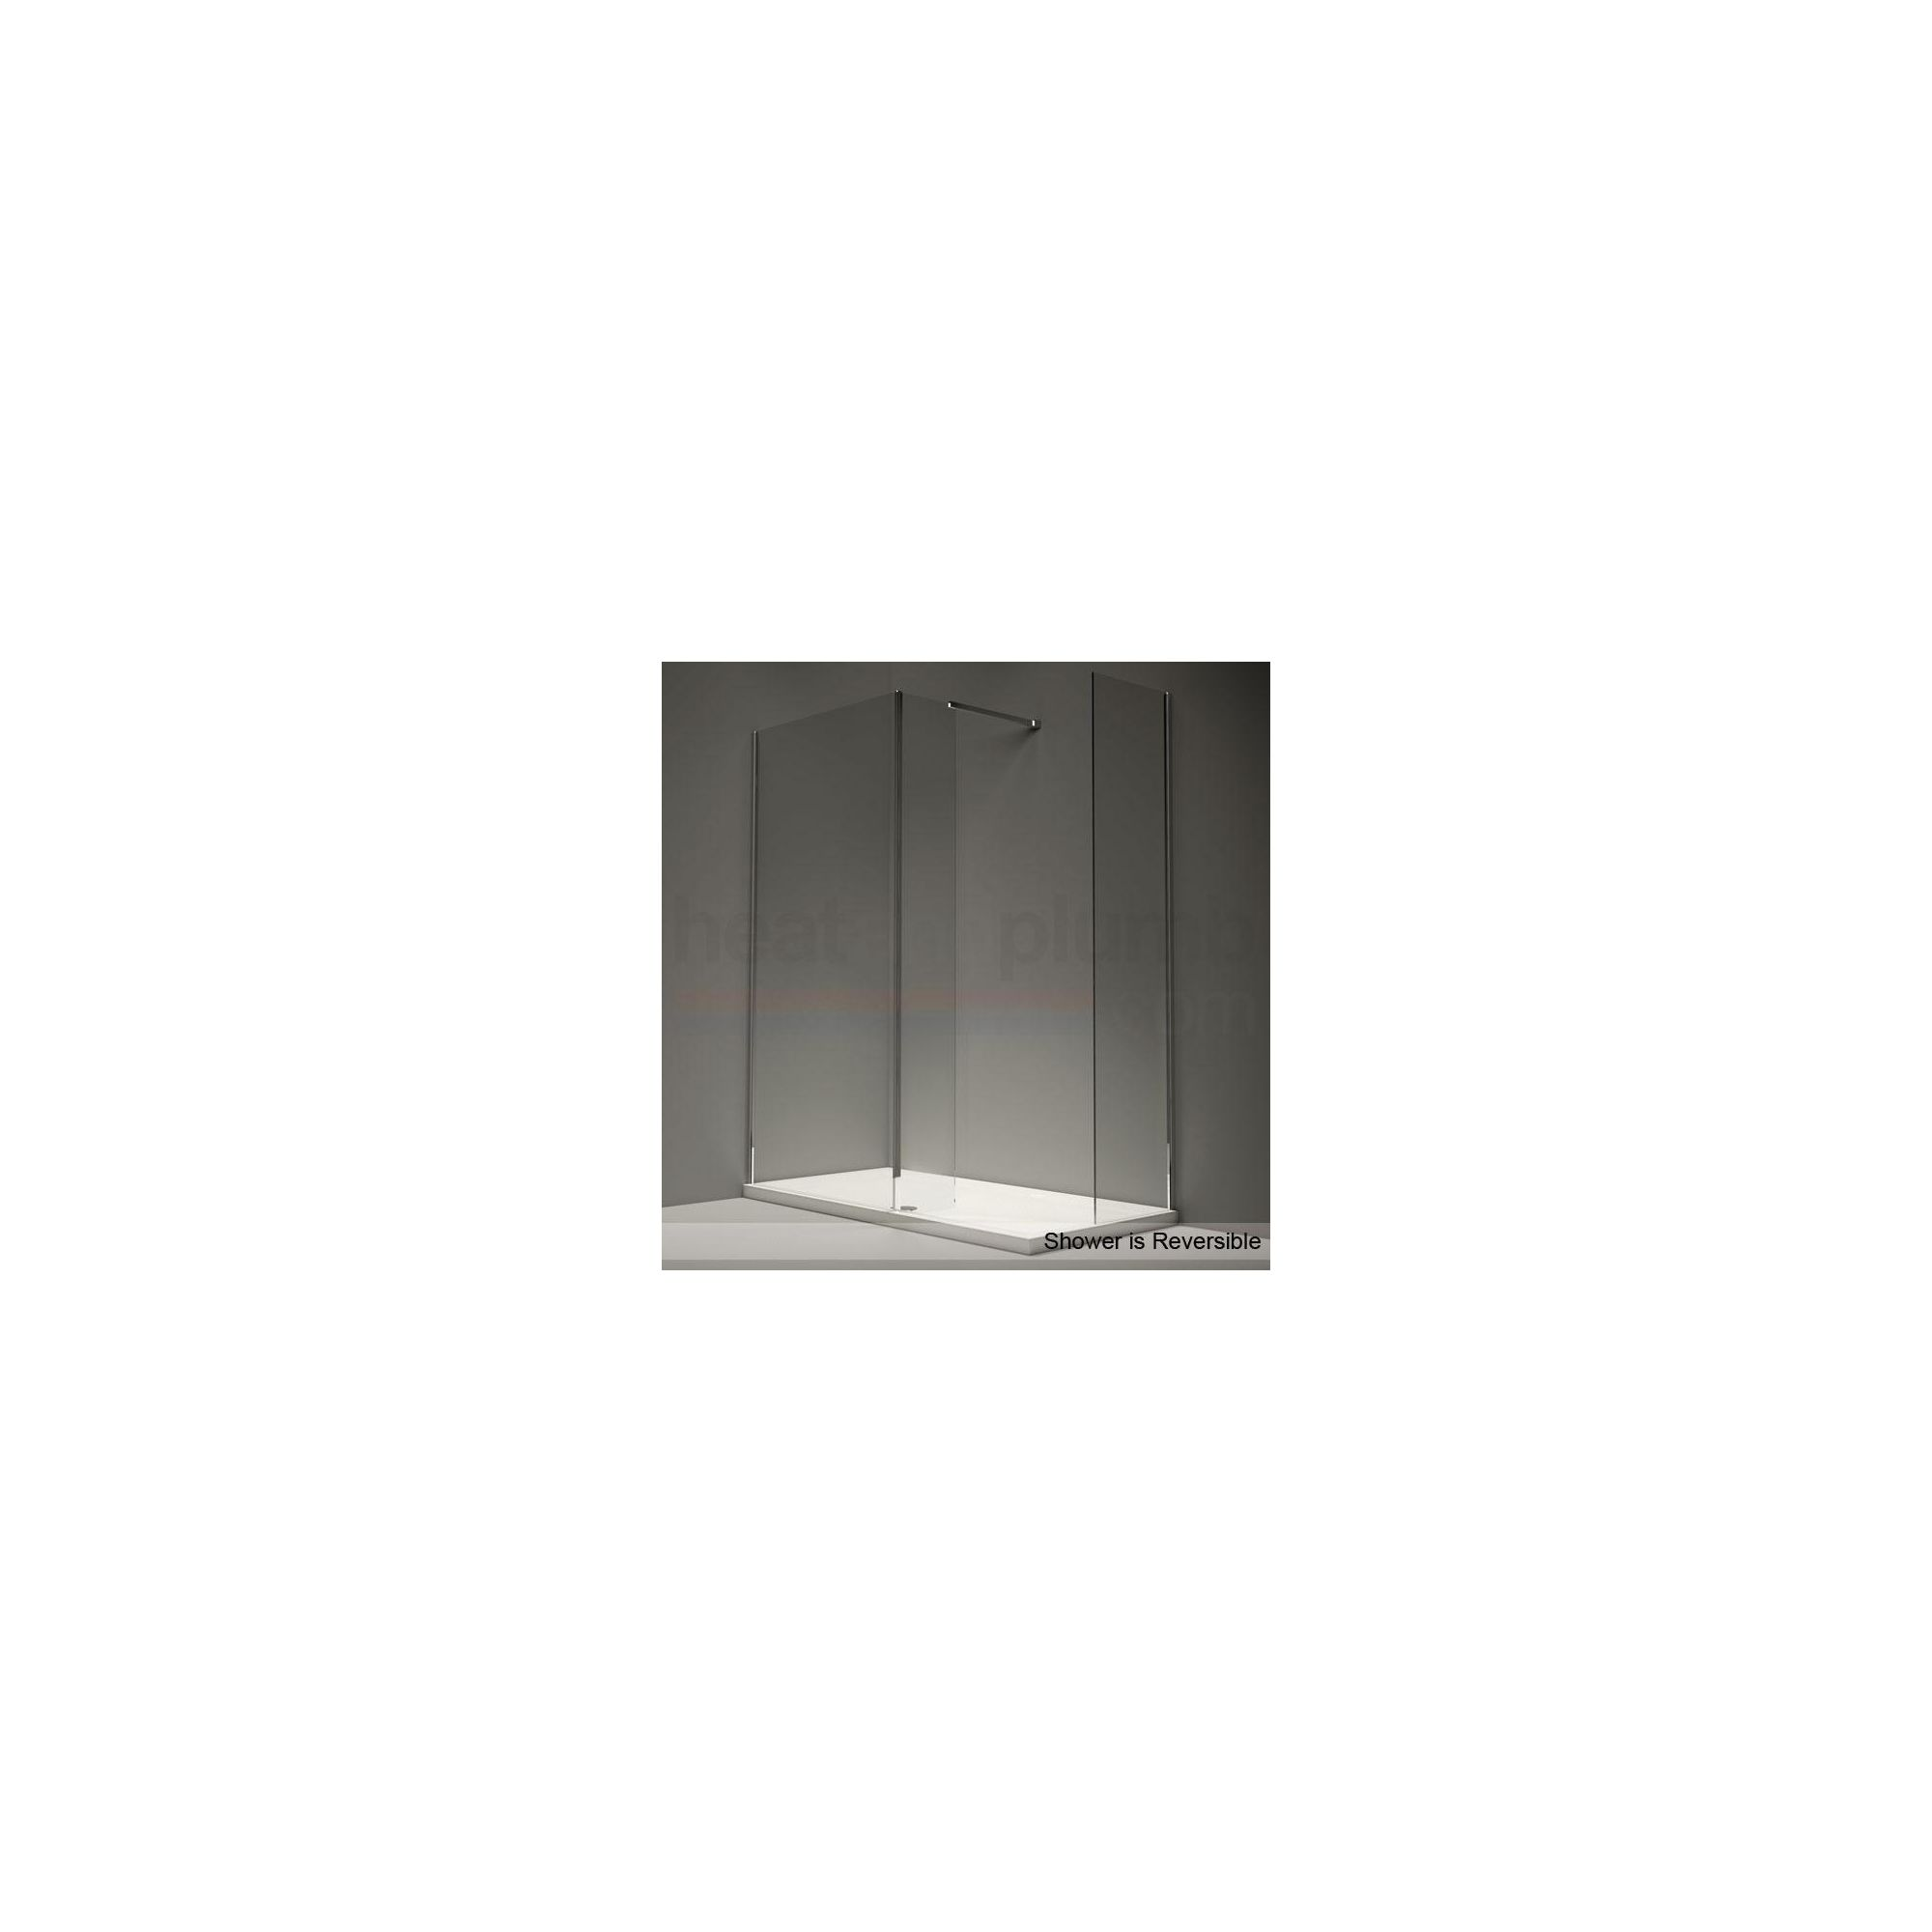 Merlyn Series 9 CUBE Walk-In Shower Enclosure, 1500mm x 800mm, Low Profile Tray, 8mm Glass at Tescos Direct